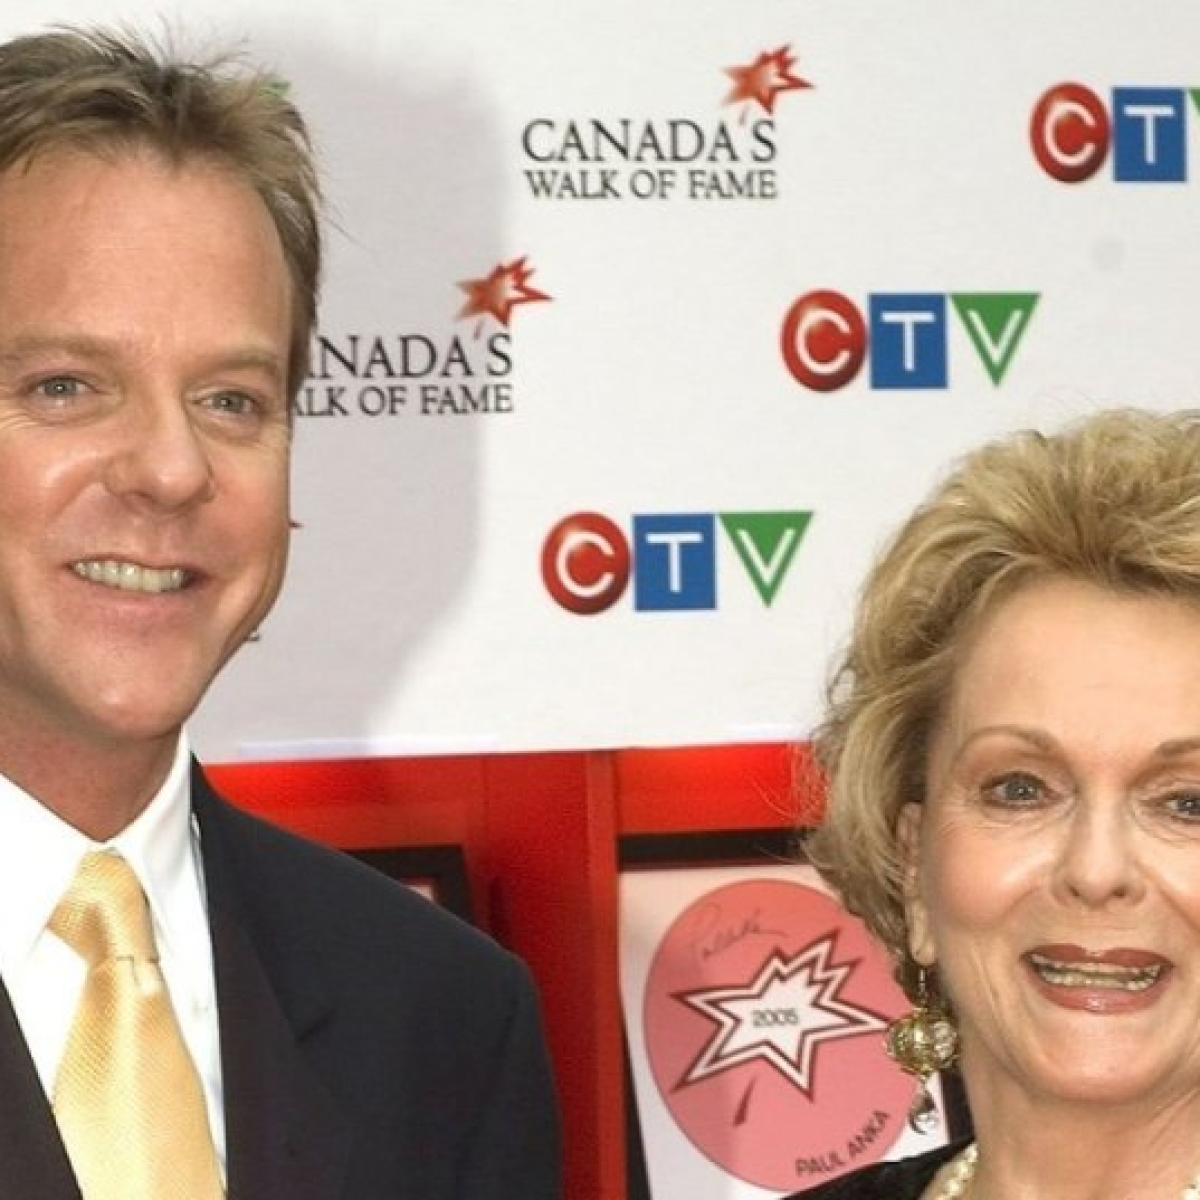 Kiefer Sutherland's mother and veteran actor Shirley Douglas dies at 86